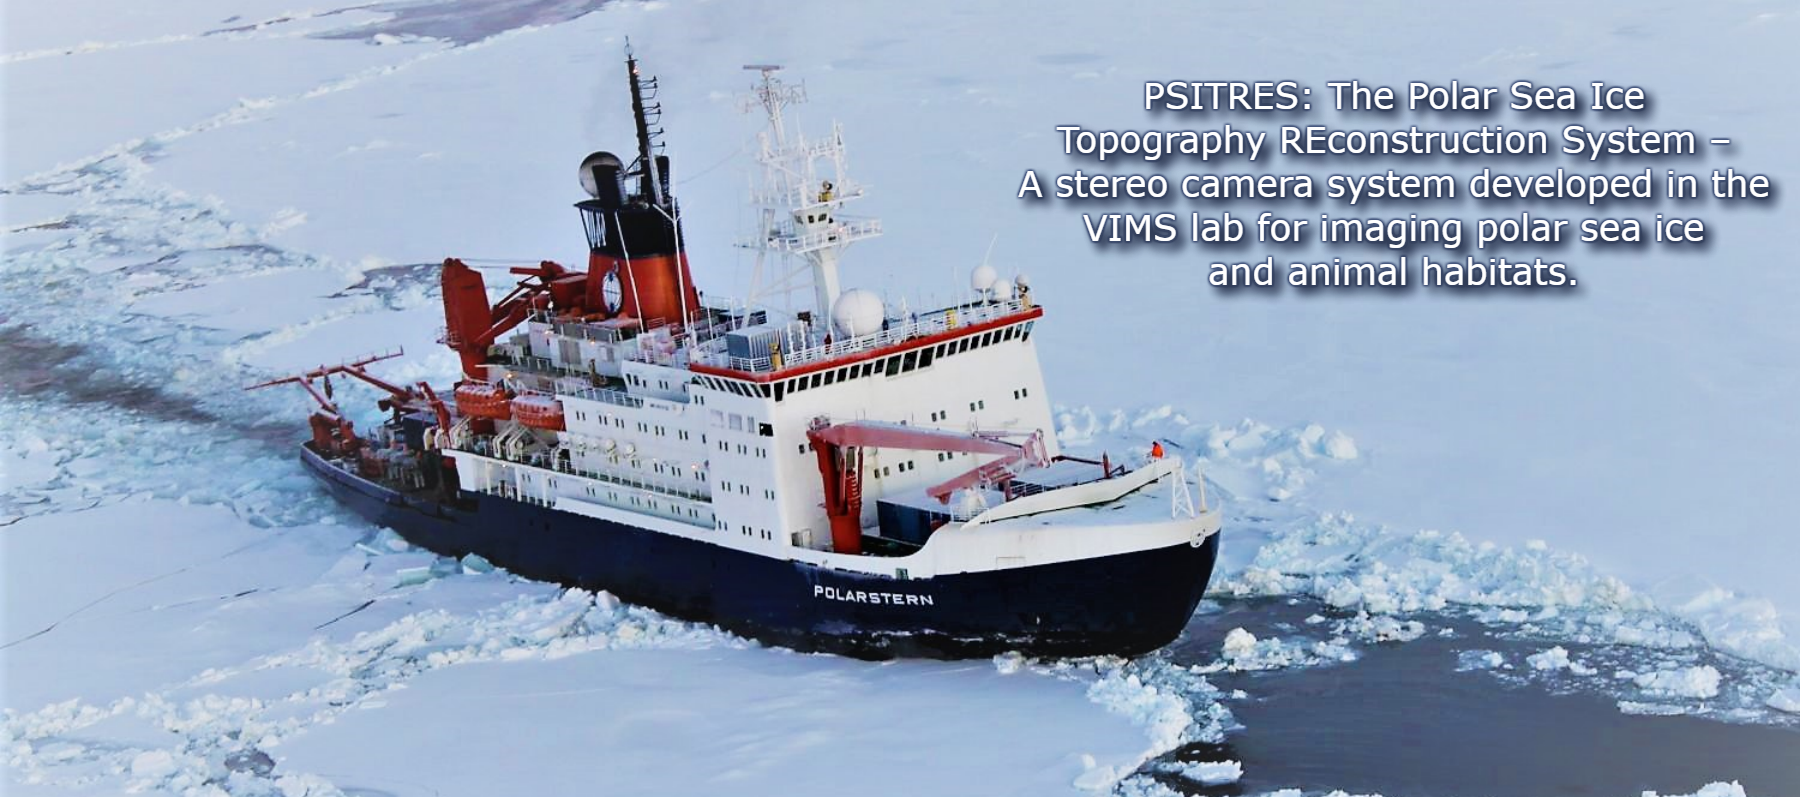 PSITRES: A Polar Sea Ice Topography and REconstruction System for analyzing arctic sea ice and polar animal habitats